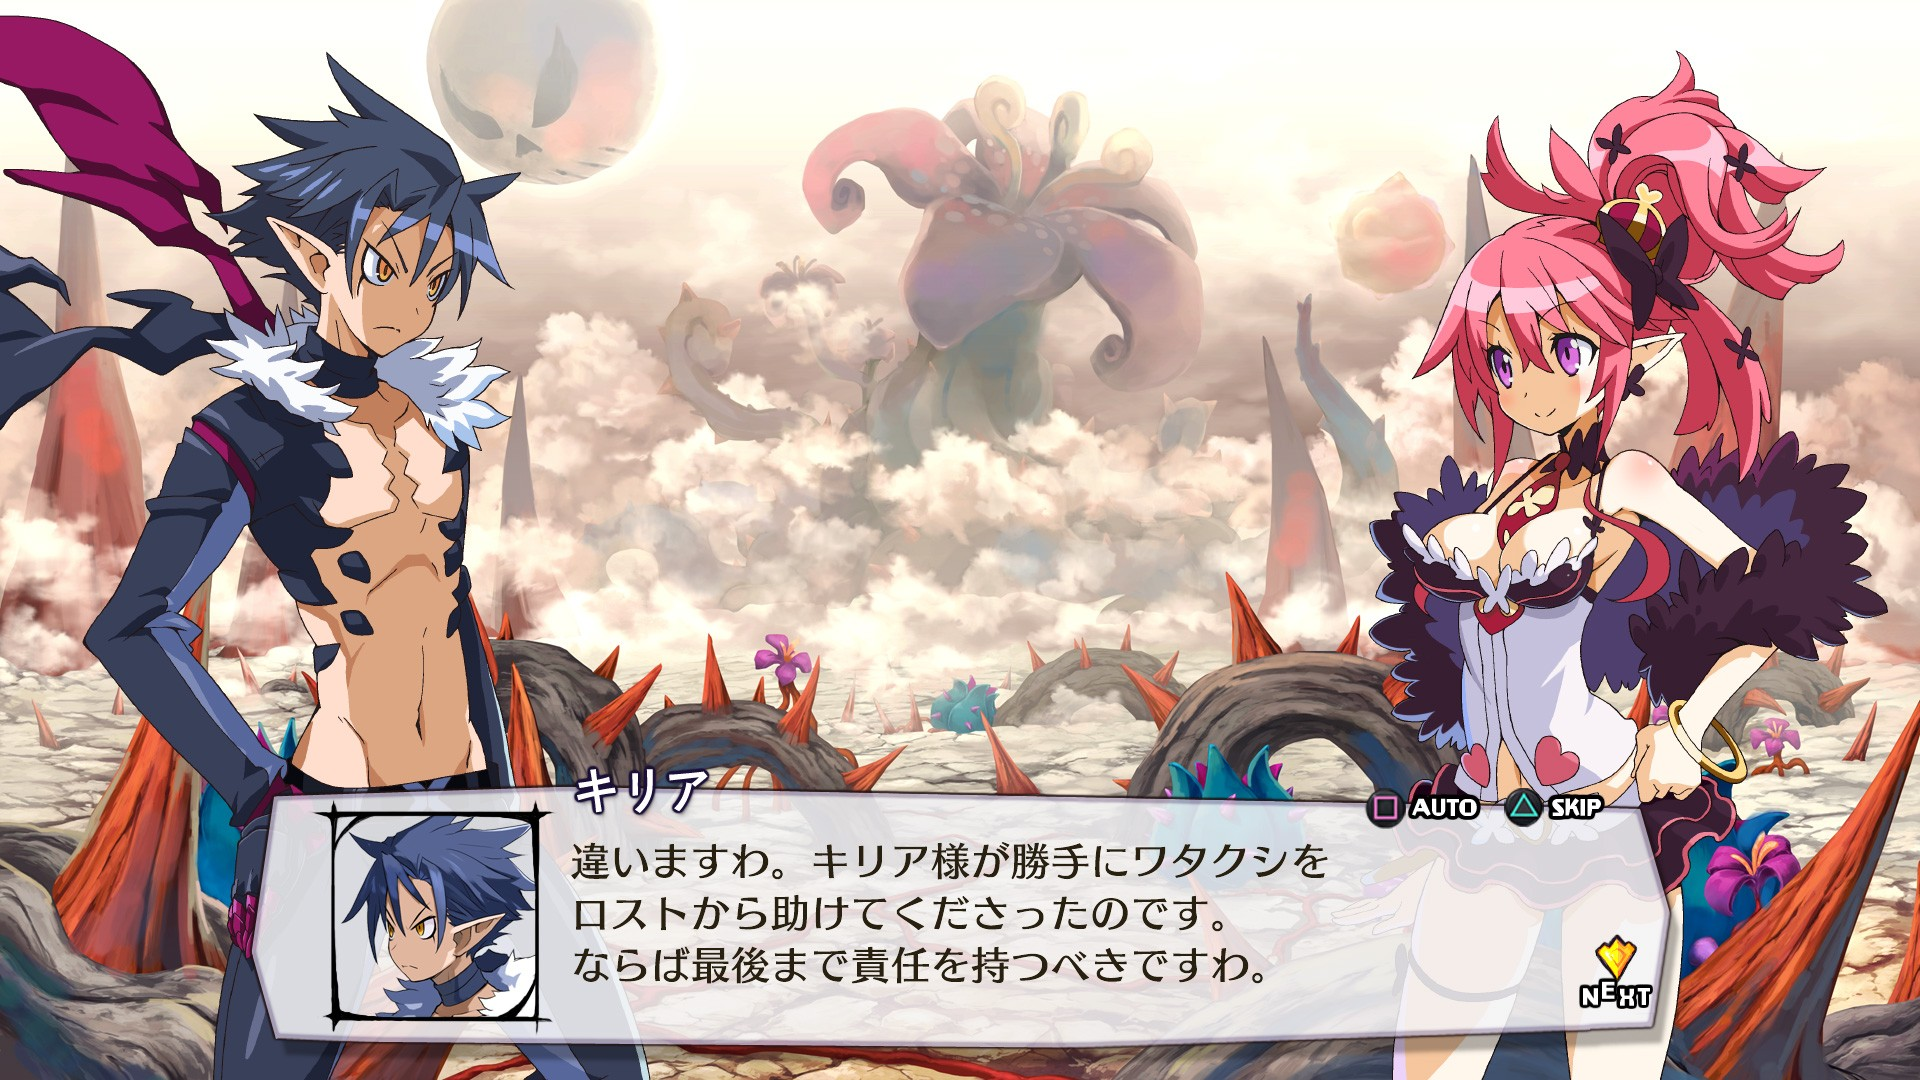 Disgaea 5: Alliance of Vengeance Gets First Ever English Trailer